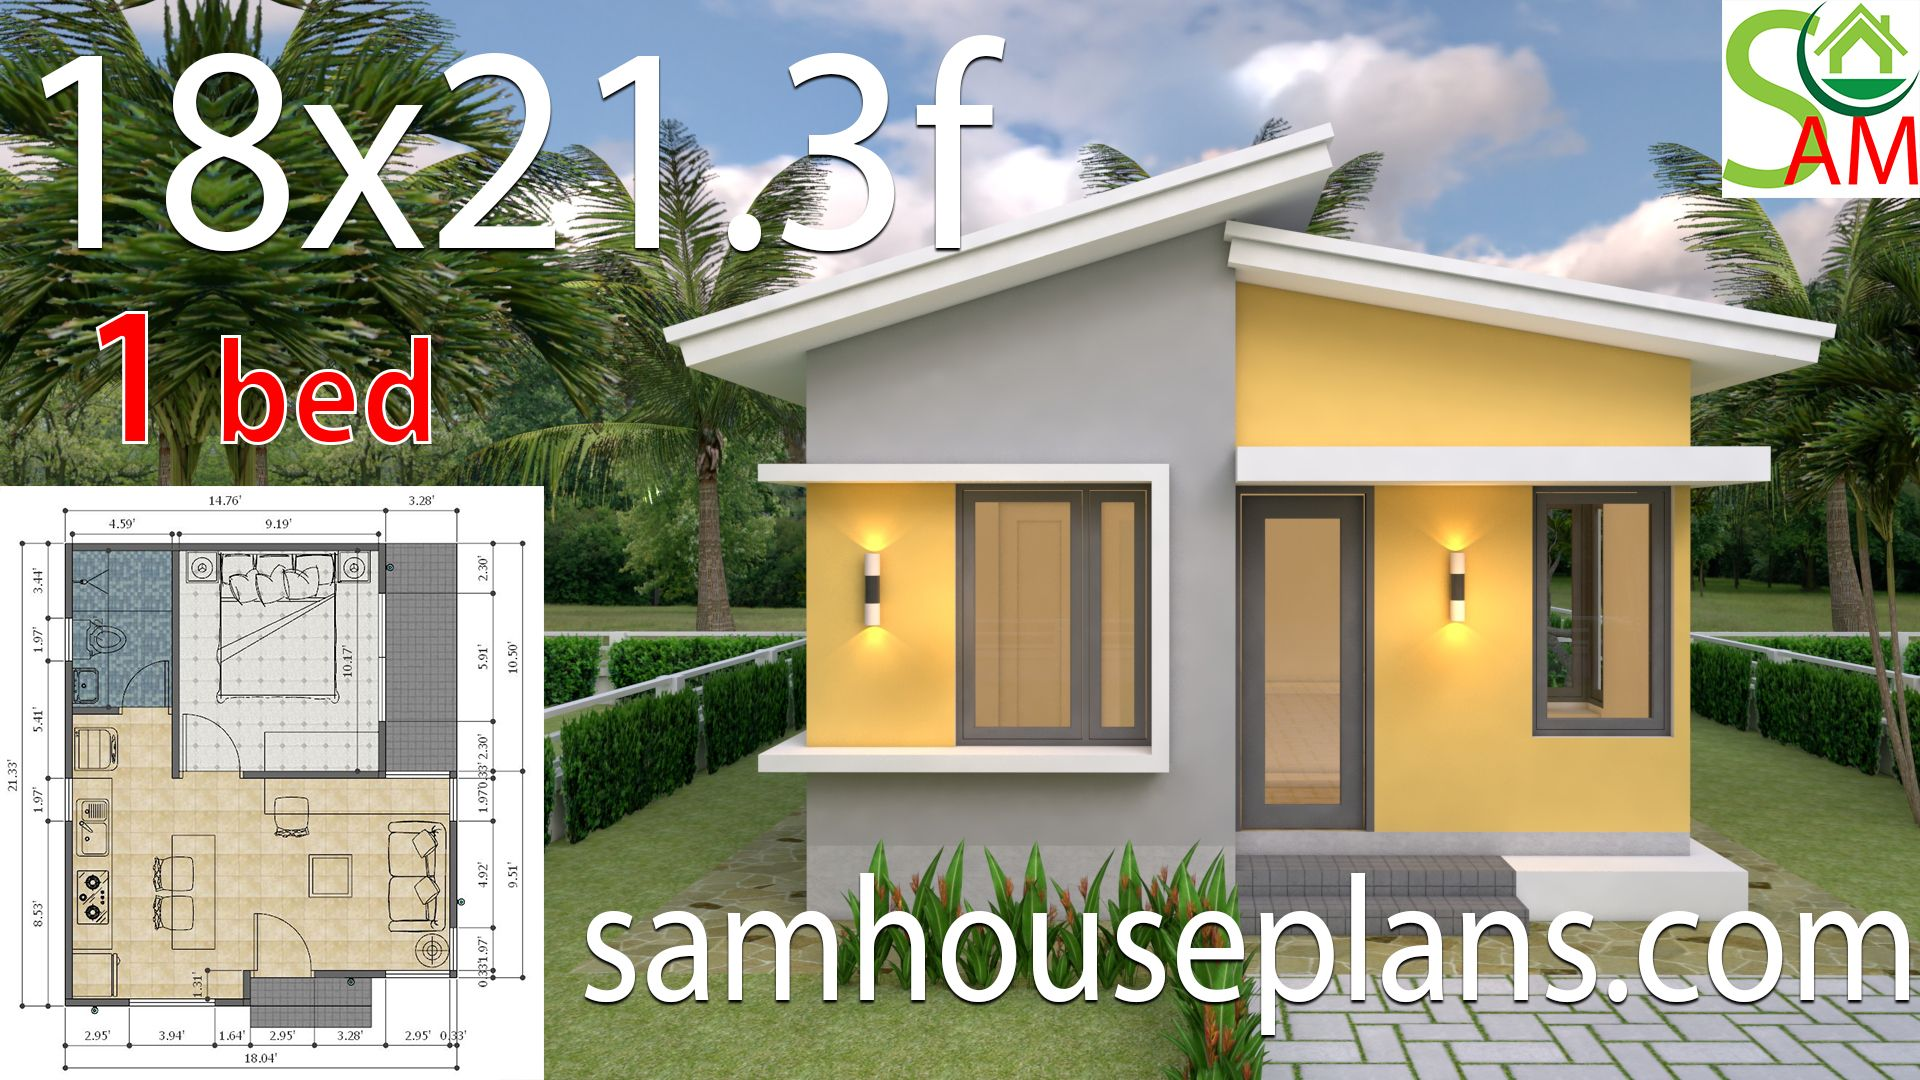 Small House Design Plans 18x21 3 Feet With One Bedroom Shad Roof Sam House Plans Small House Design Plans Small House Design Backyard Guest Houses